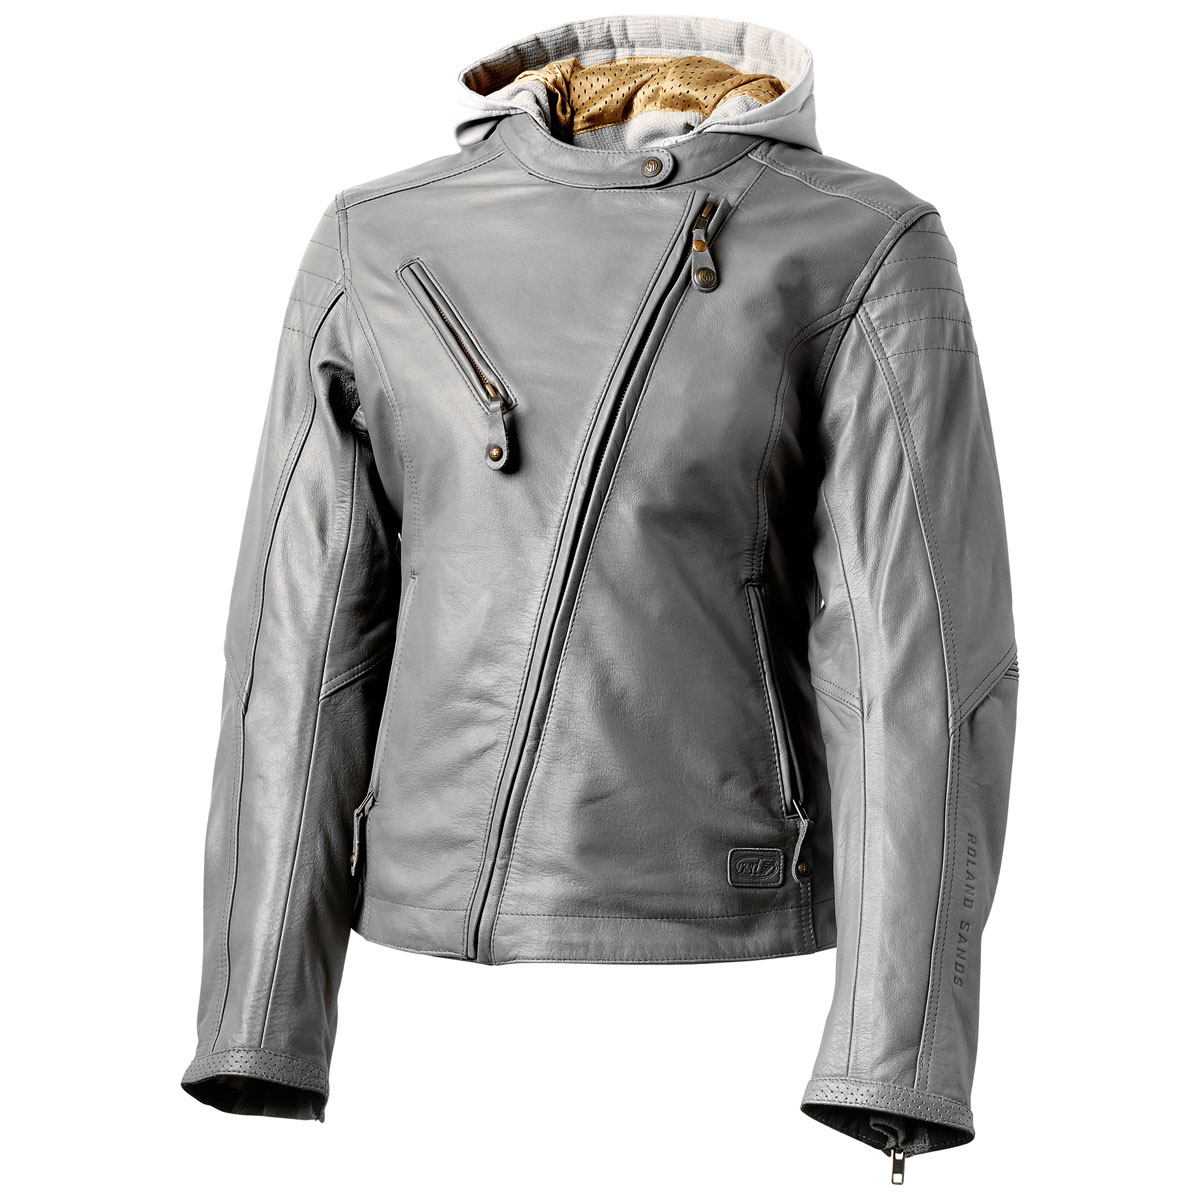 Roland Sands Design Apparel Women's Mia Gunmetal Gray Leather Jacket